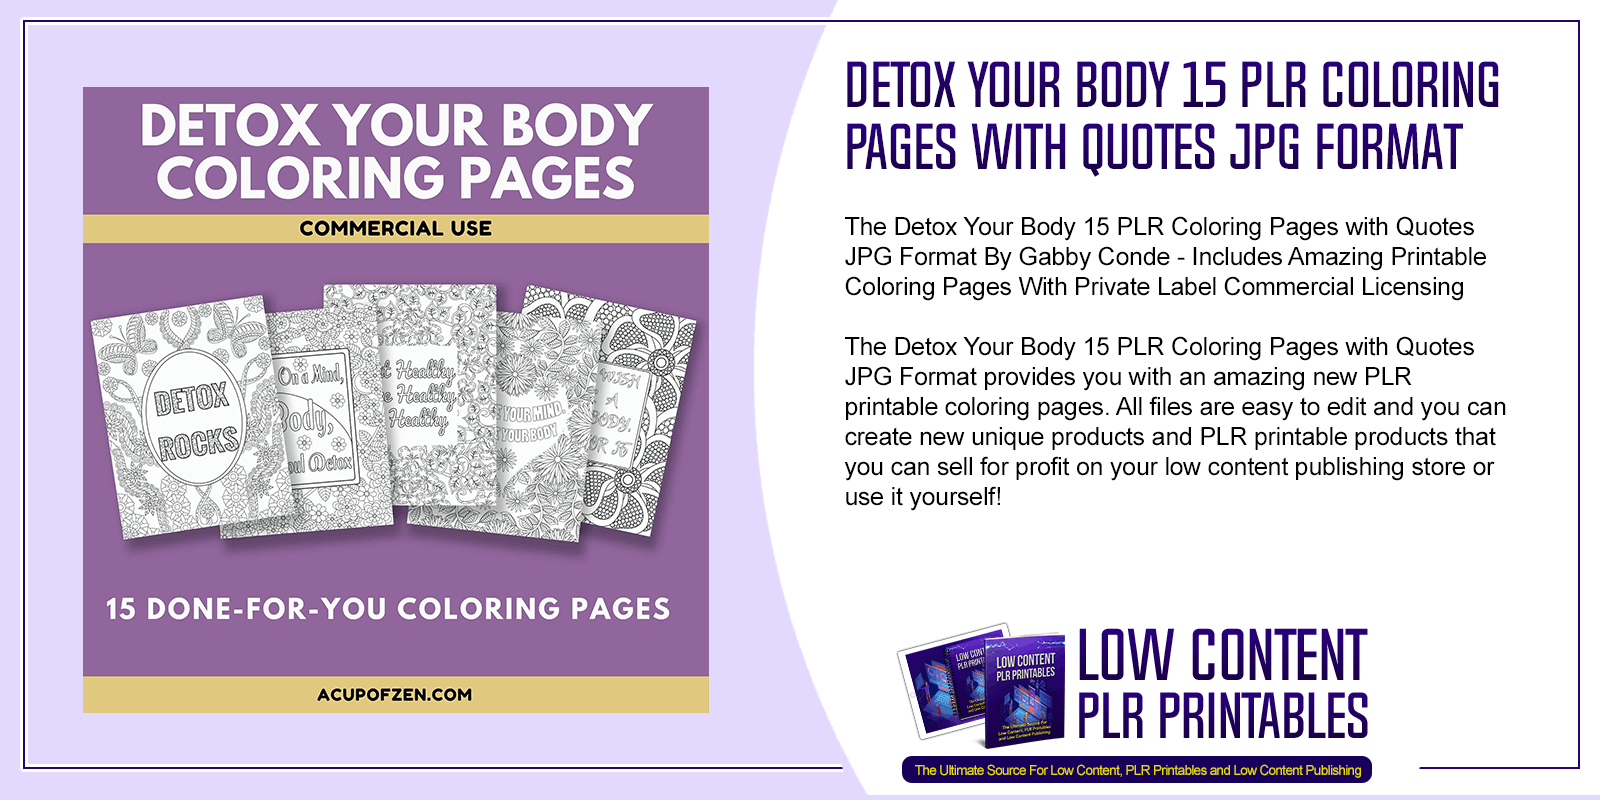 Detox Your Body 15 PLR Coloring Pages with Quotes JPG Format